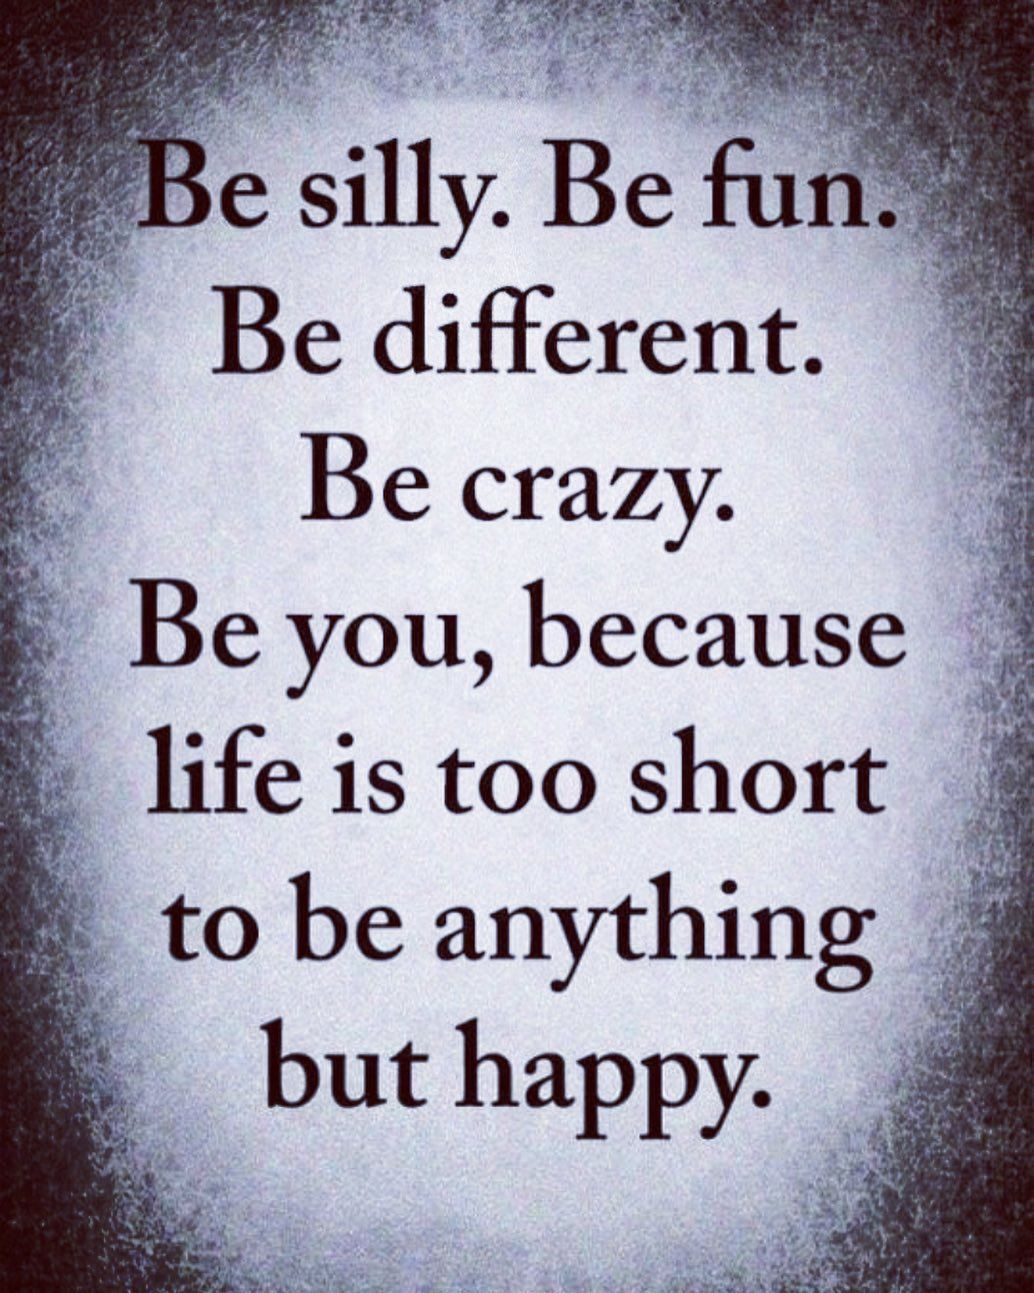 Life Is Short Be You Motivational Memes Inspirational Quotes Motivational Memes Life Quotes